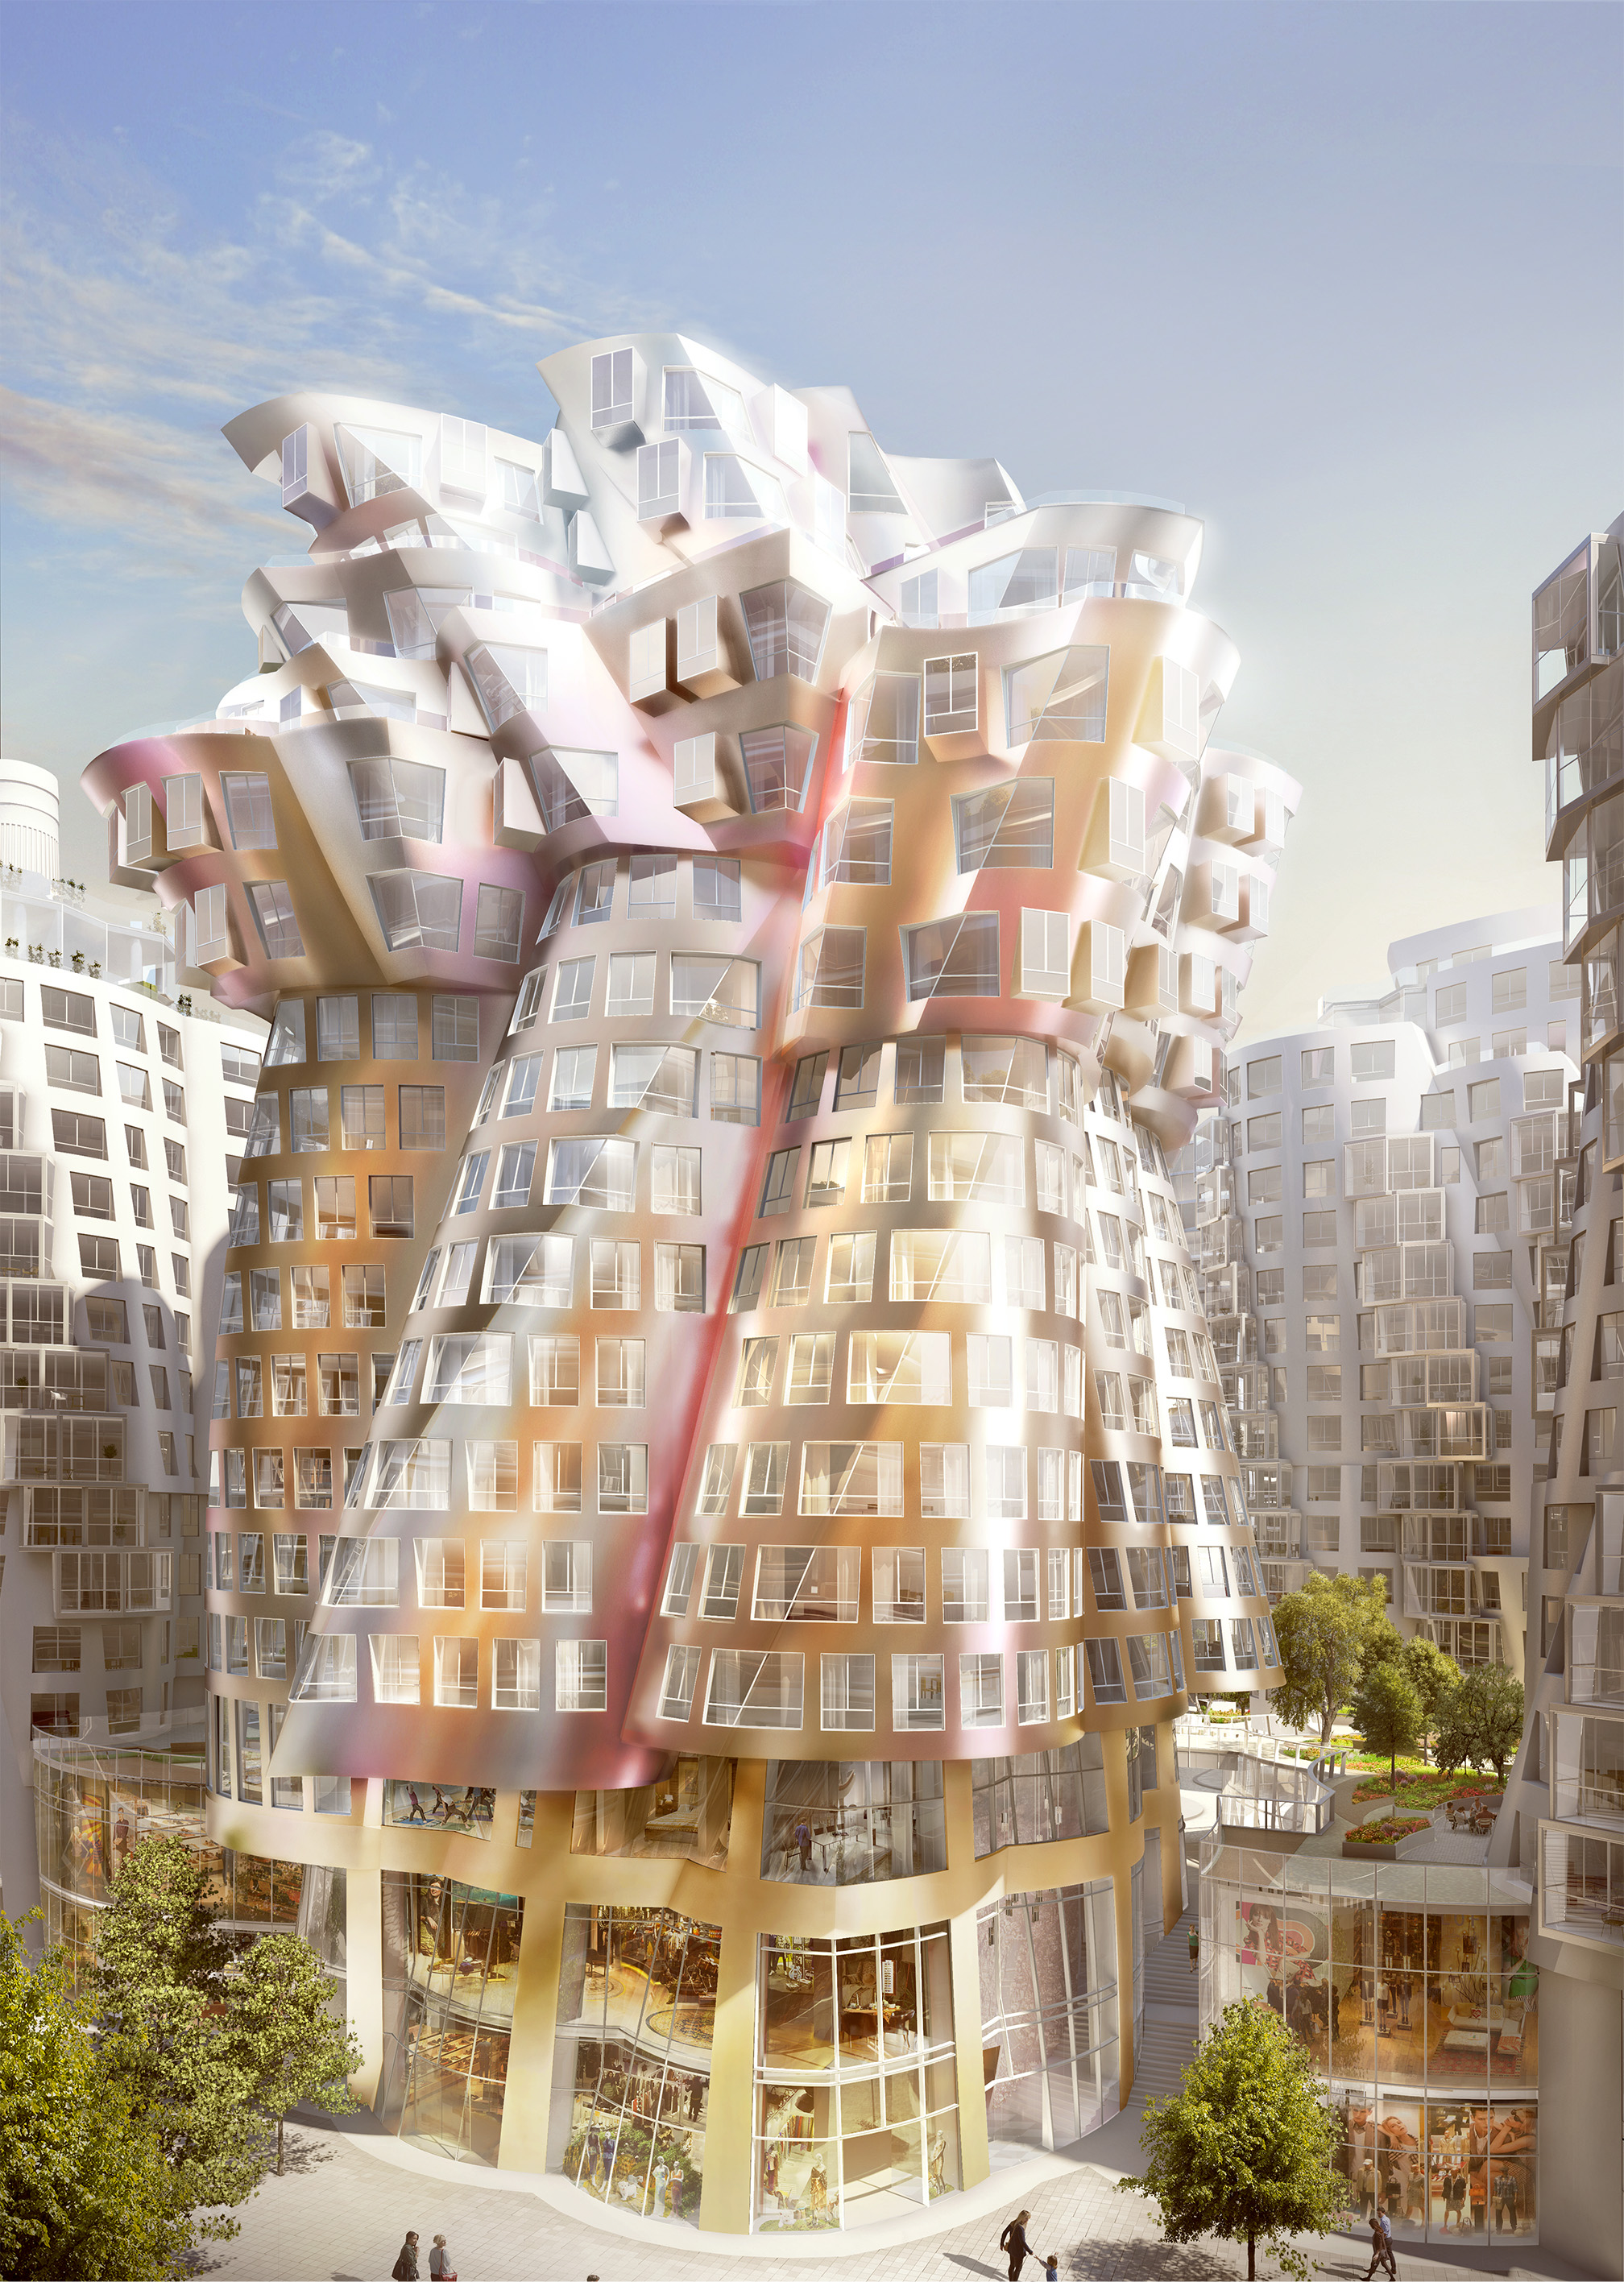 The Flower, designed by Gehry Partners, sits at the centre on the Electric Boulevard.